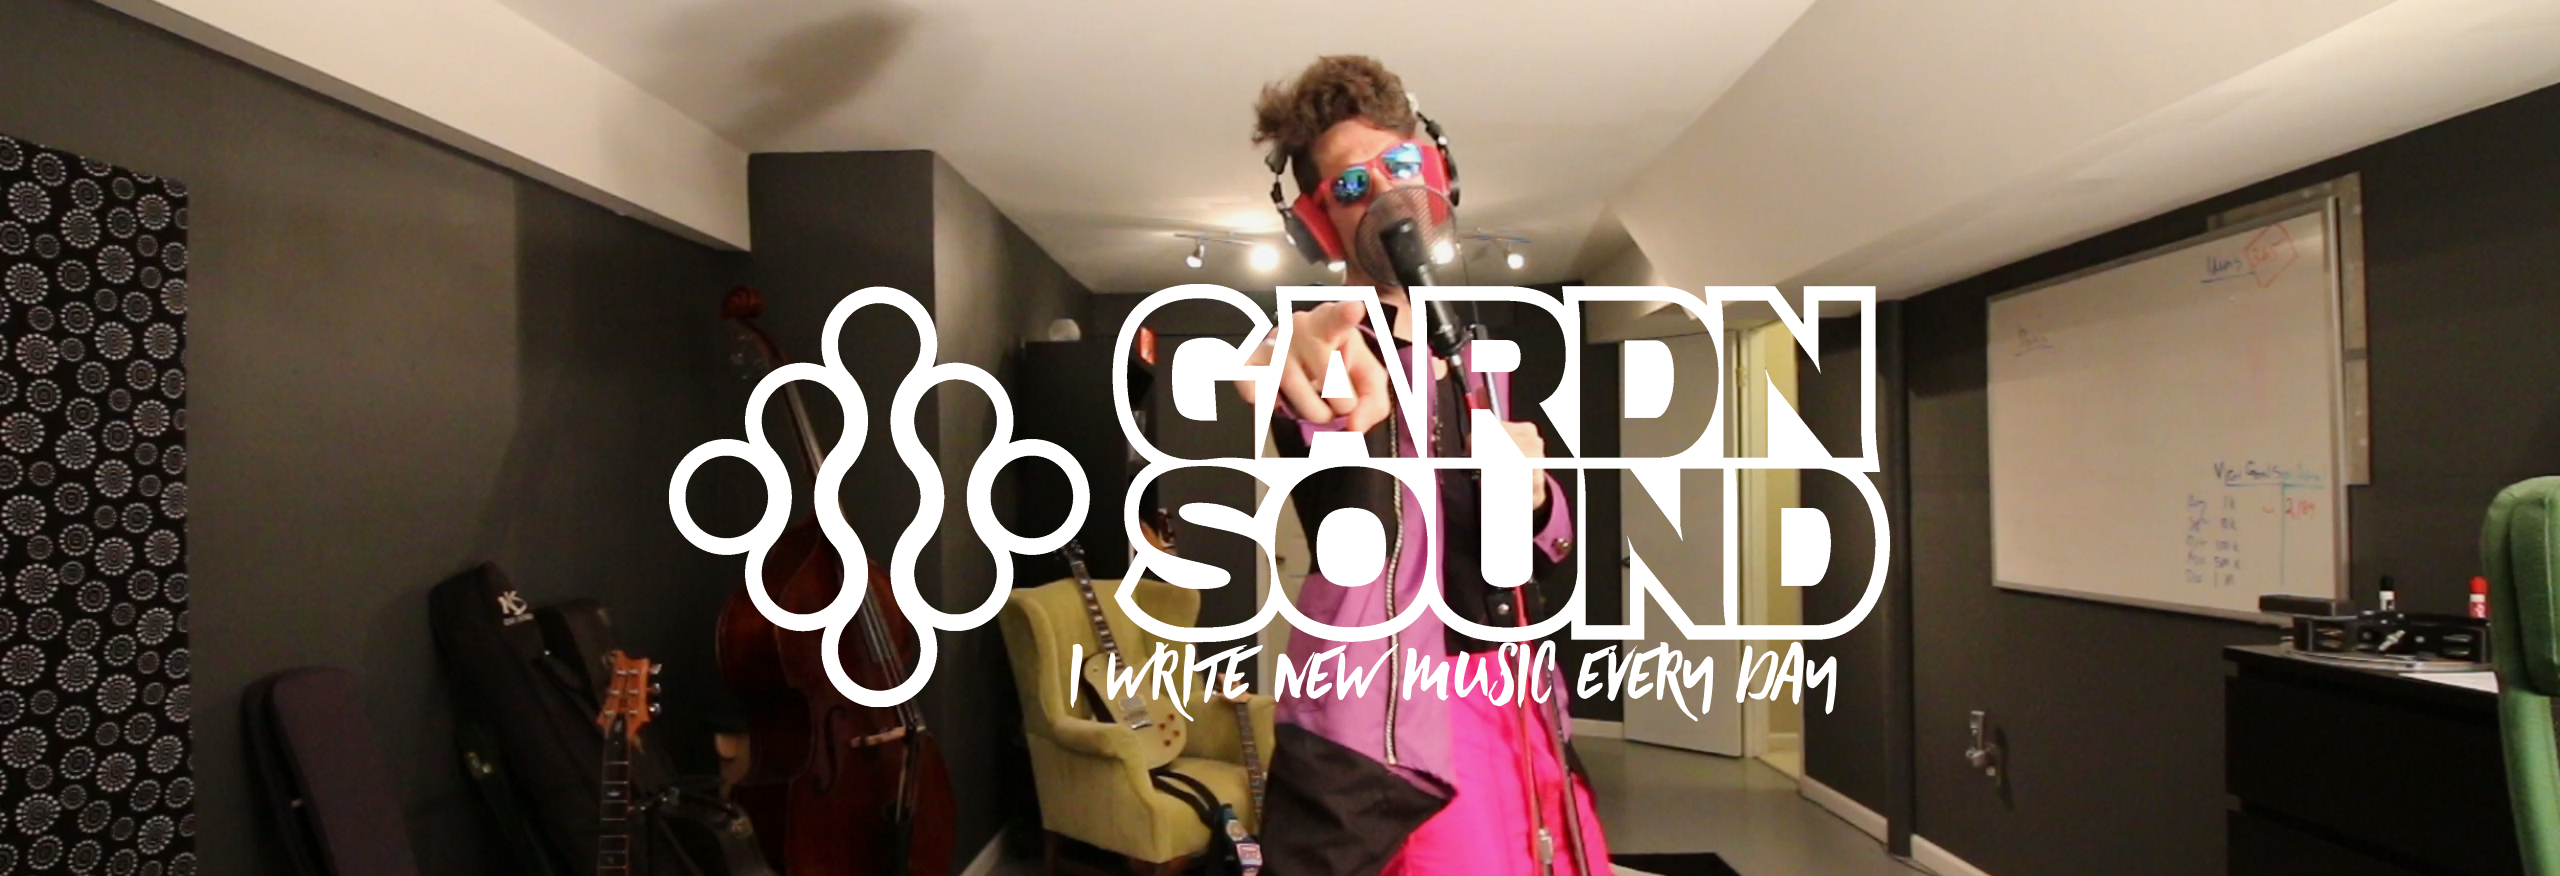 Sowing Songs: Youtuber GARDNSOUND is Crafting a Track Each Day for A Year